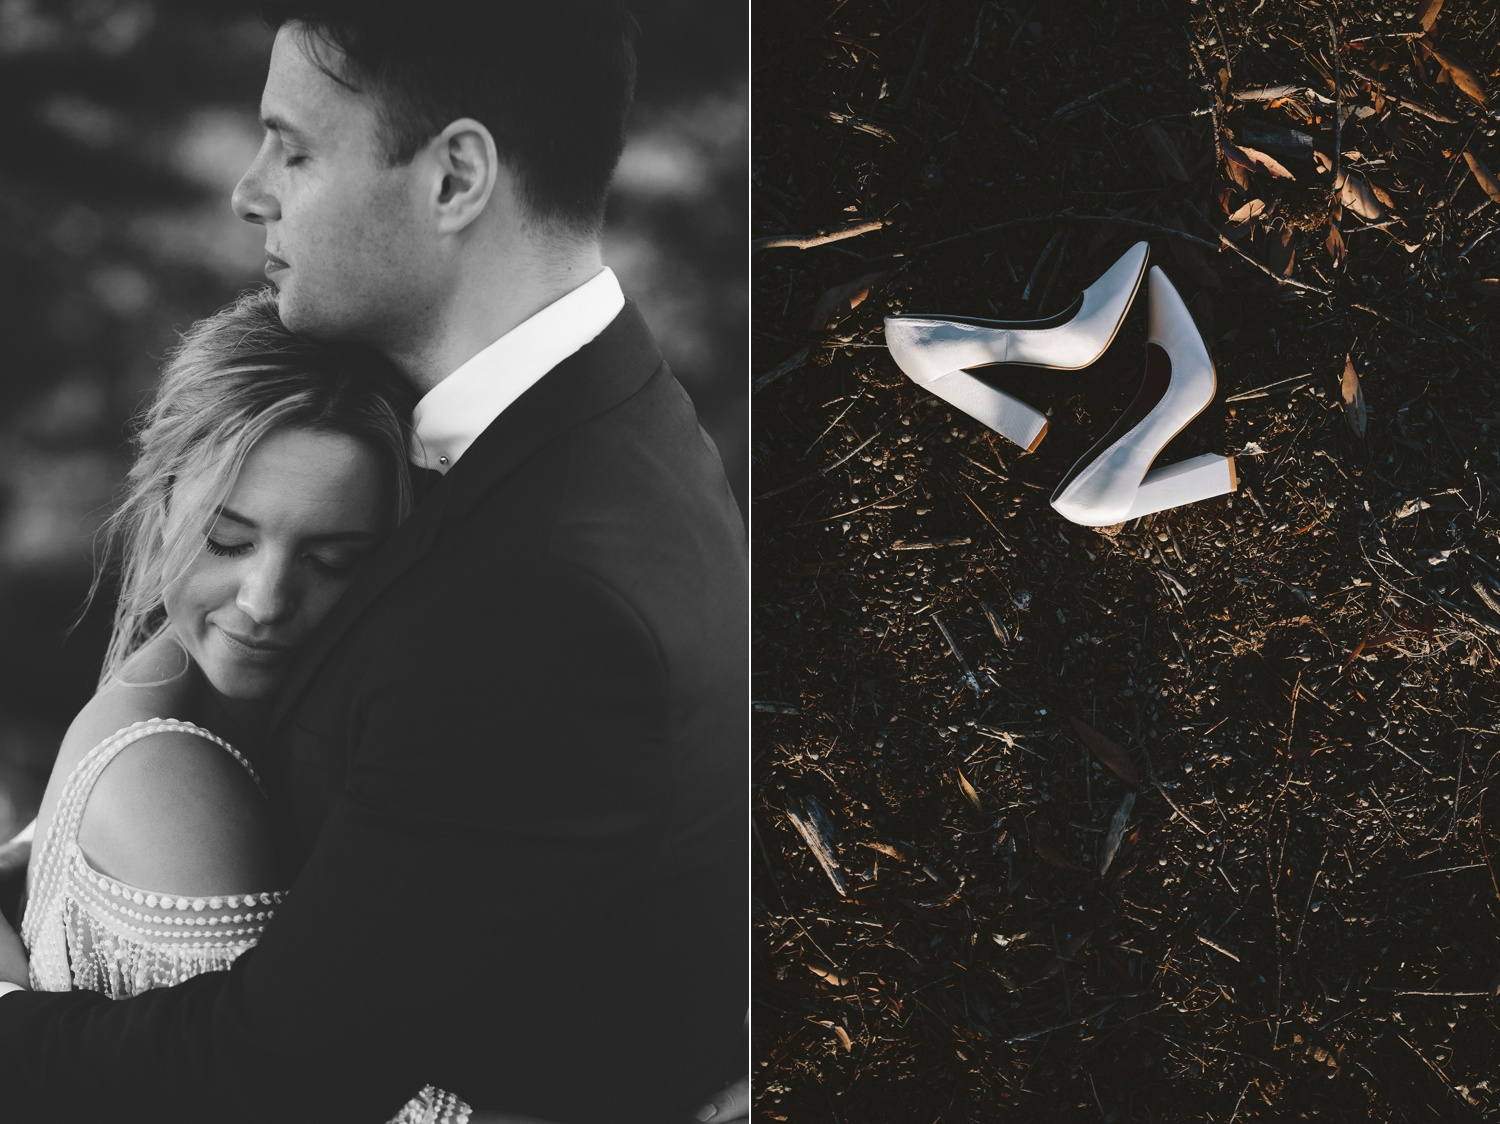 charlie_ray_photography_runaway_romance_elopement_emily_moon_plett_simple_boho_wedding_south_africa_bohemium_0095.jpg